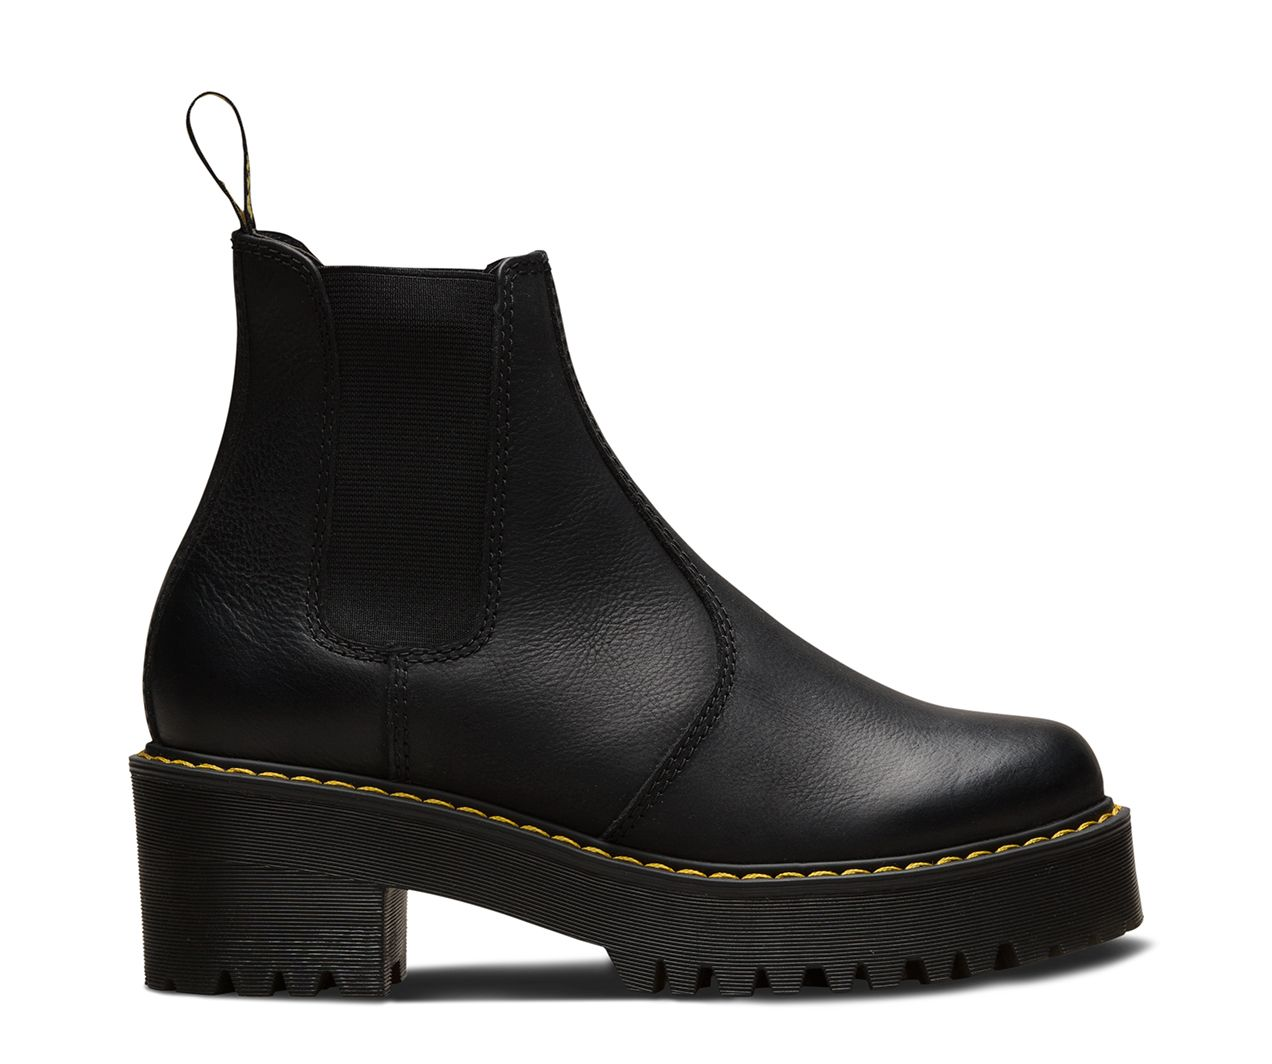 The Rometty is a women s Chelsea boot that strikes the perfect balance  between femininity and the tough, rebellious Dr. Martens spirit. d0957efe15